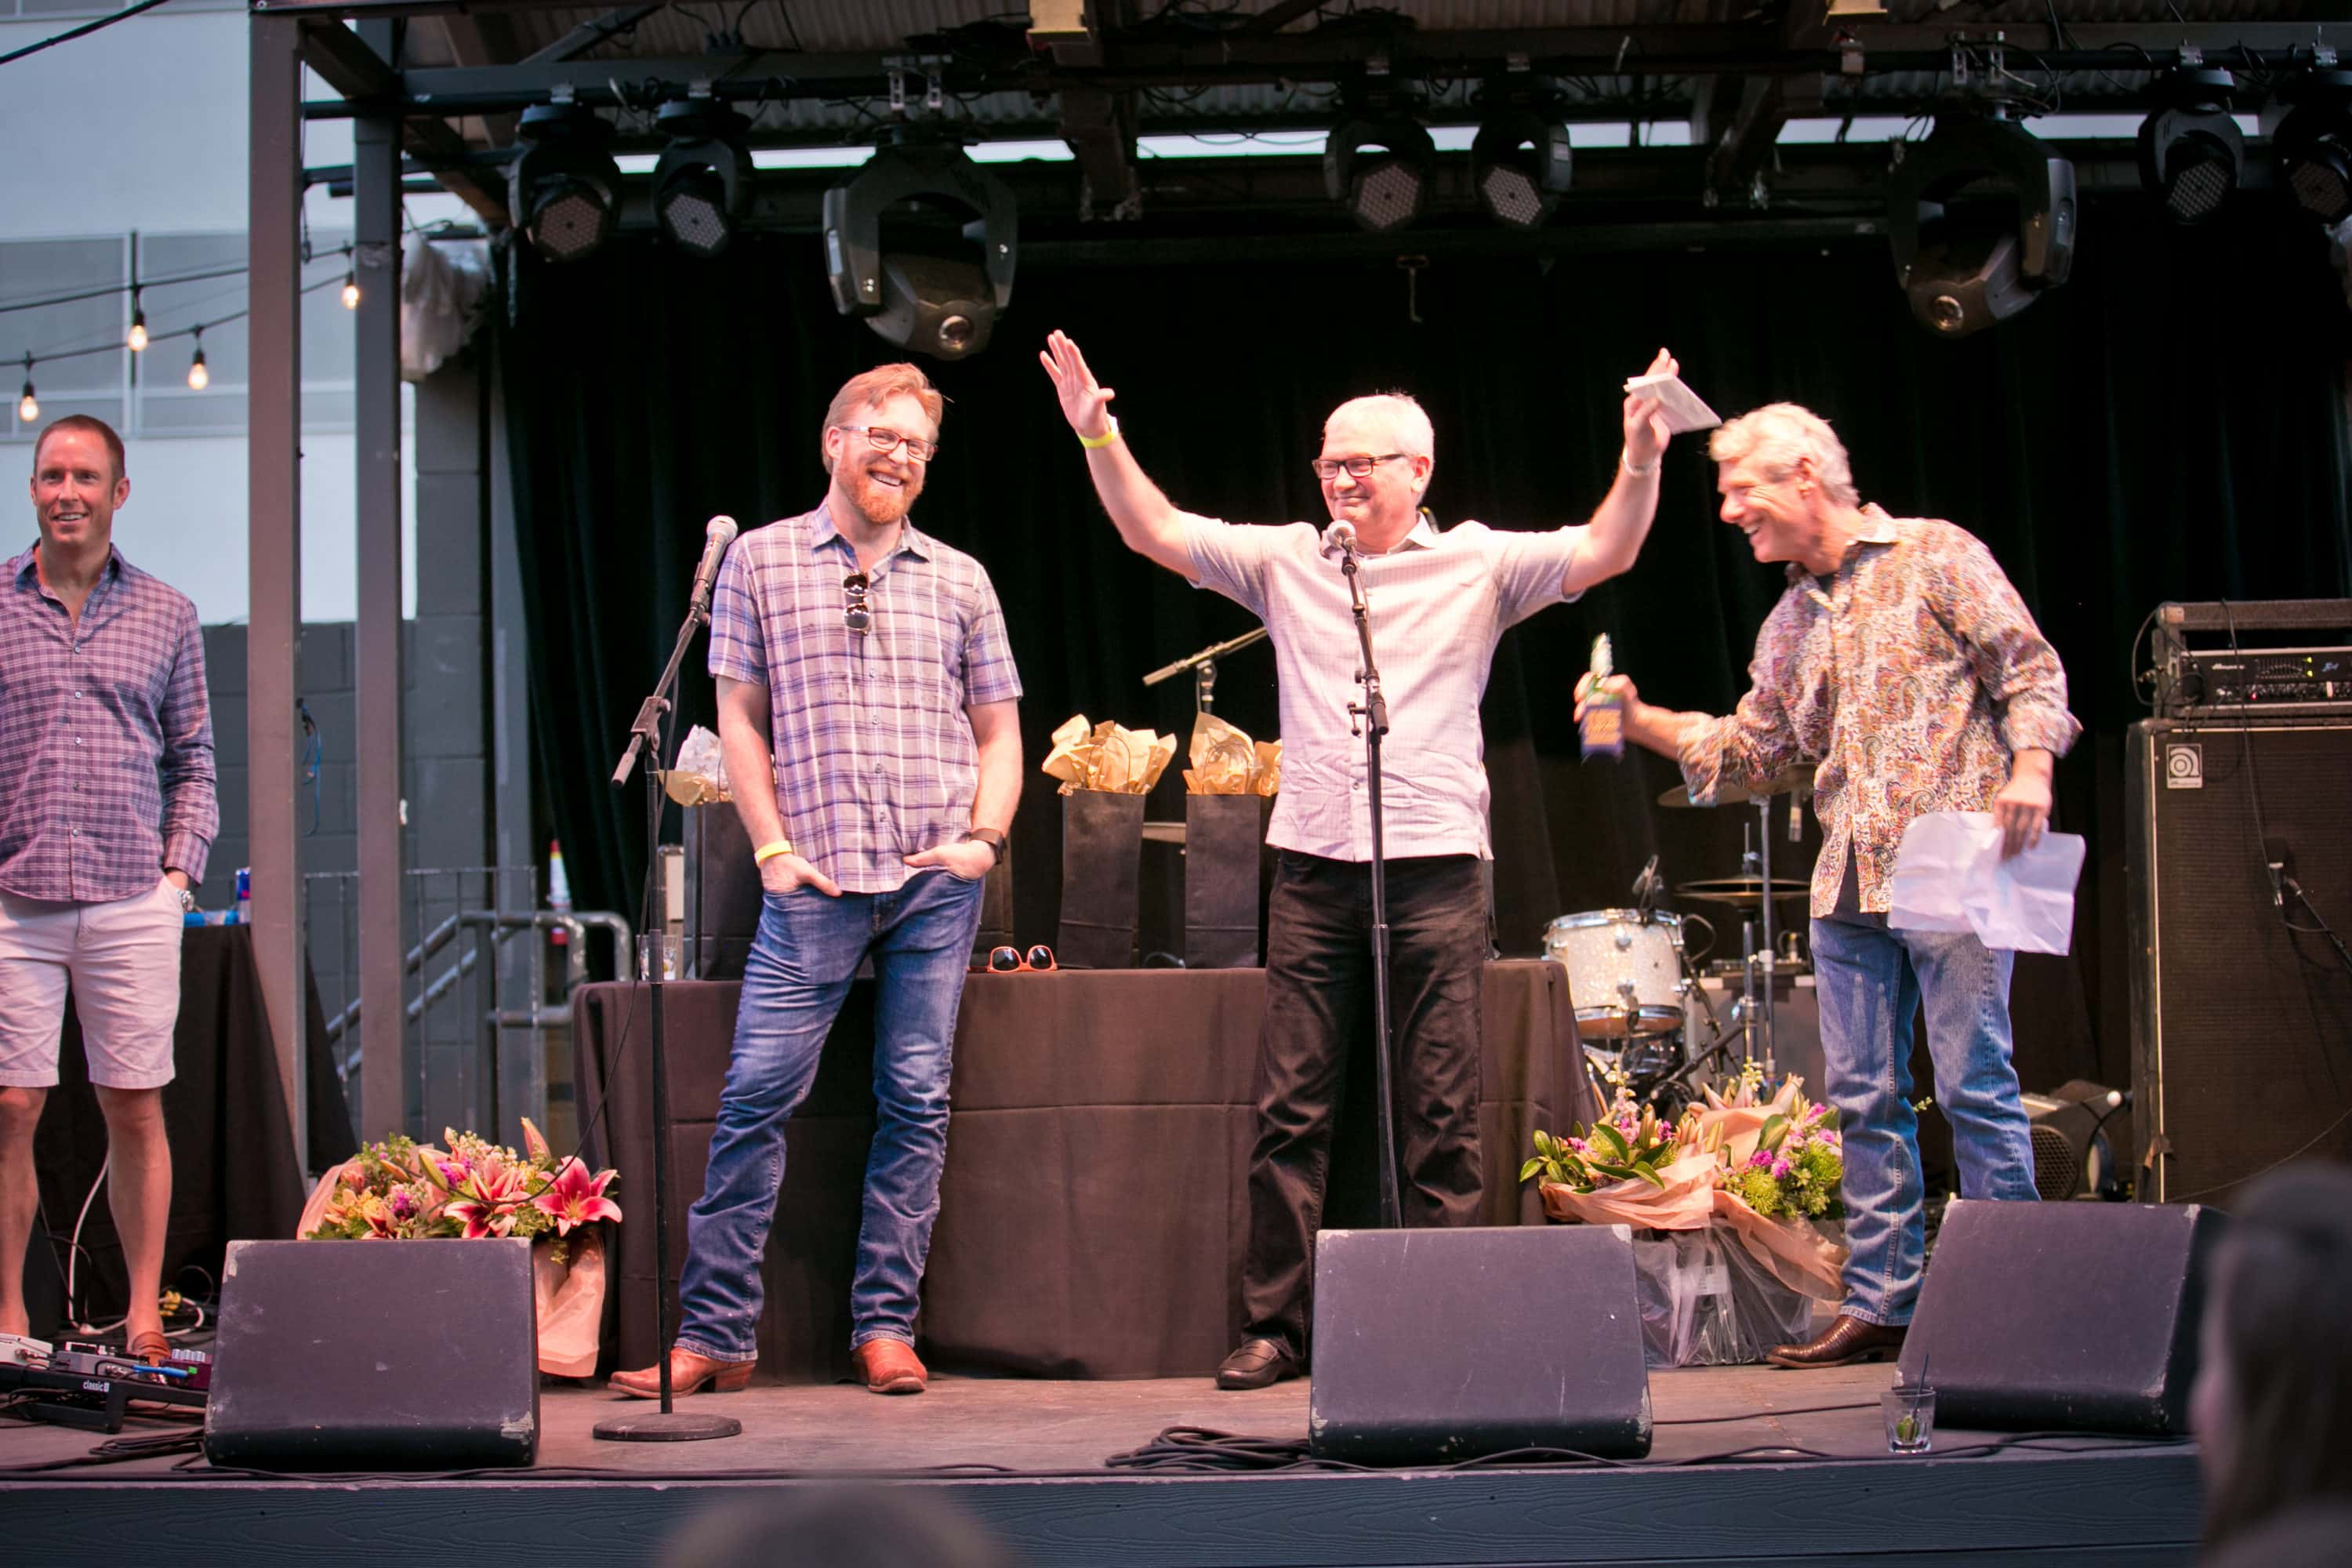 Mike onstage with co-founders Chad Barrett, Jay Lamy and Bart Matheney at AQUILA's 10th Anniversary party in April 2017.